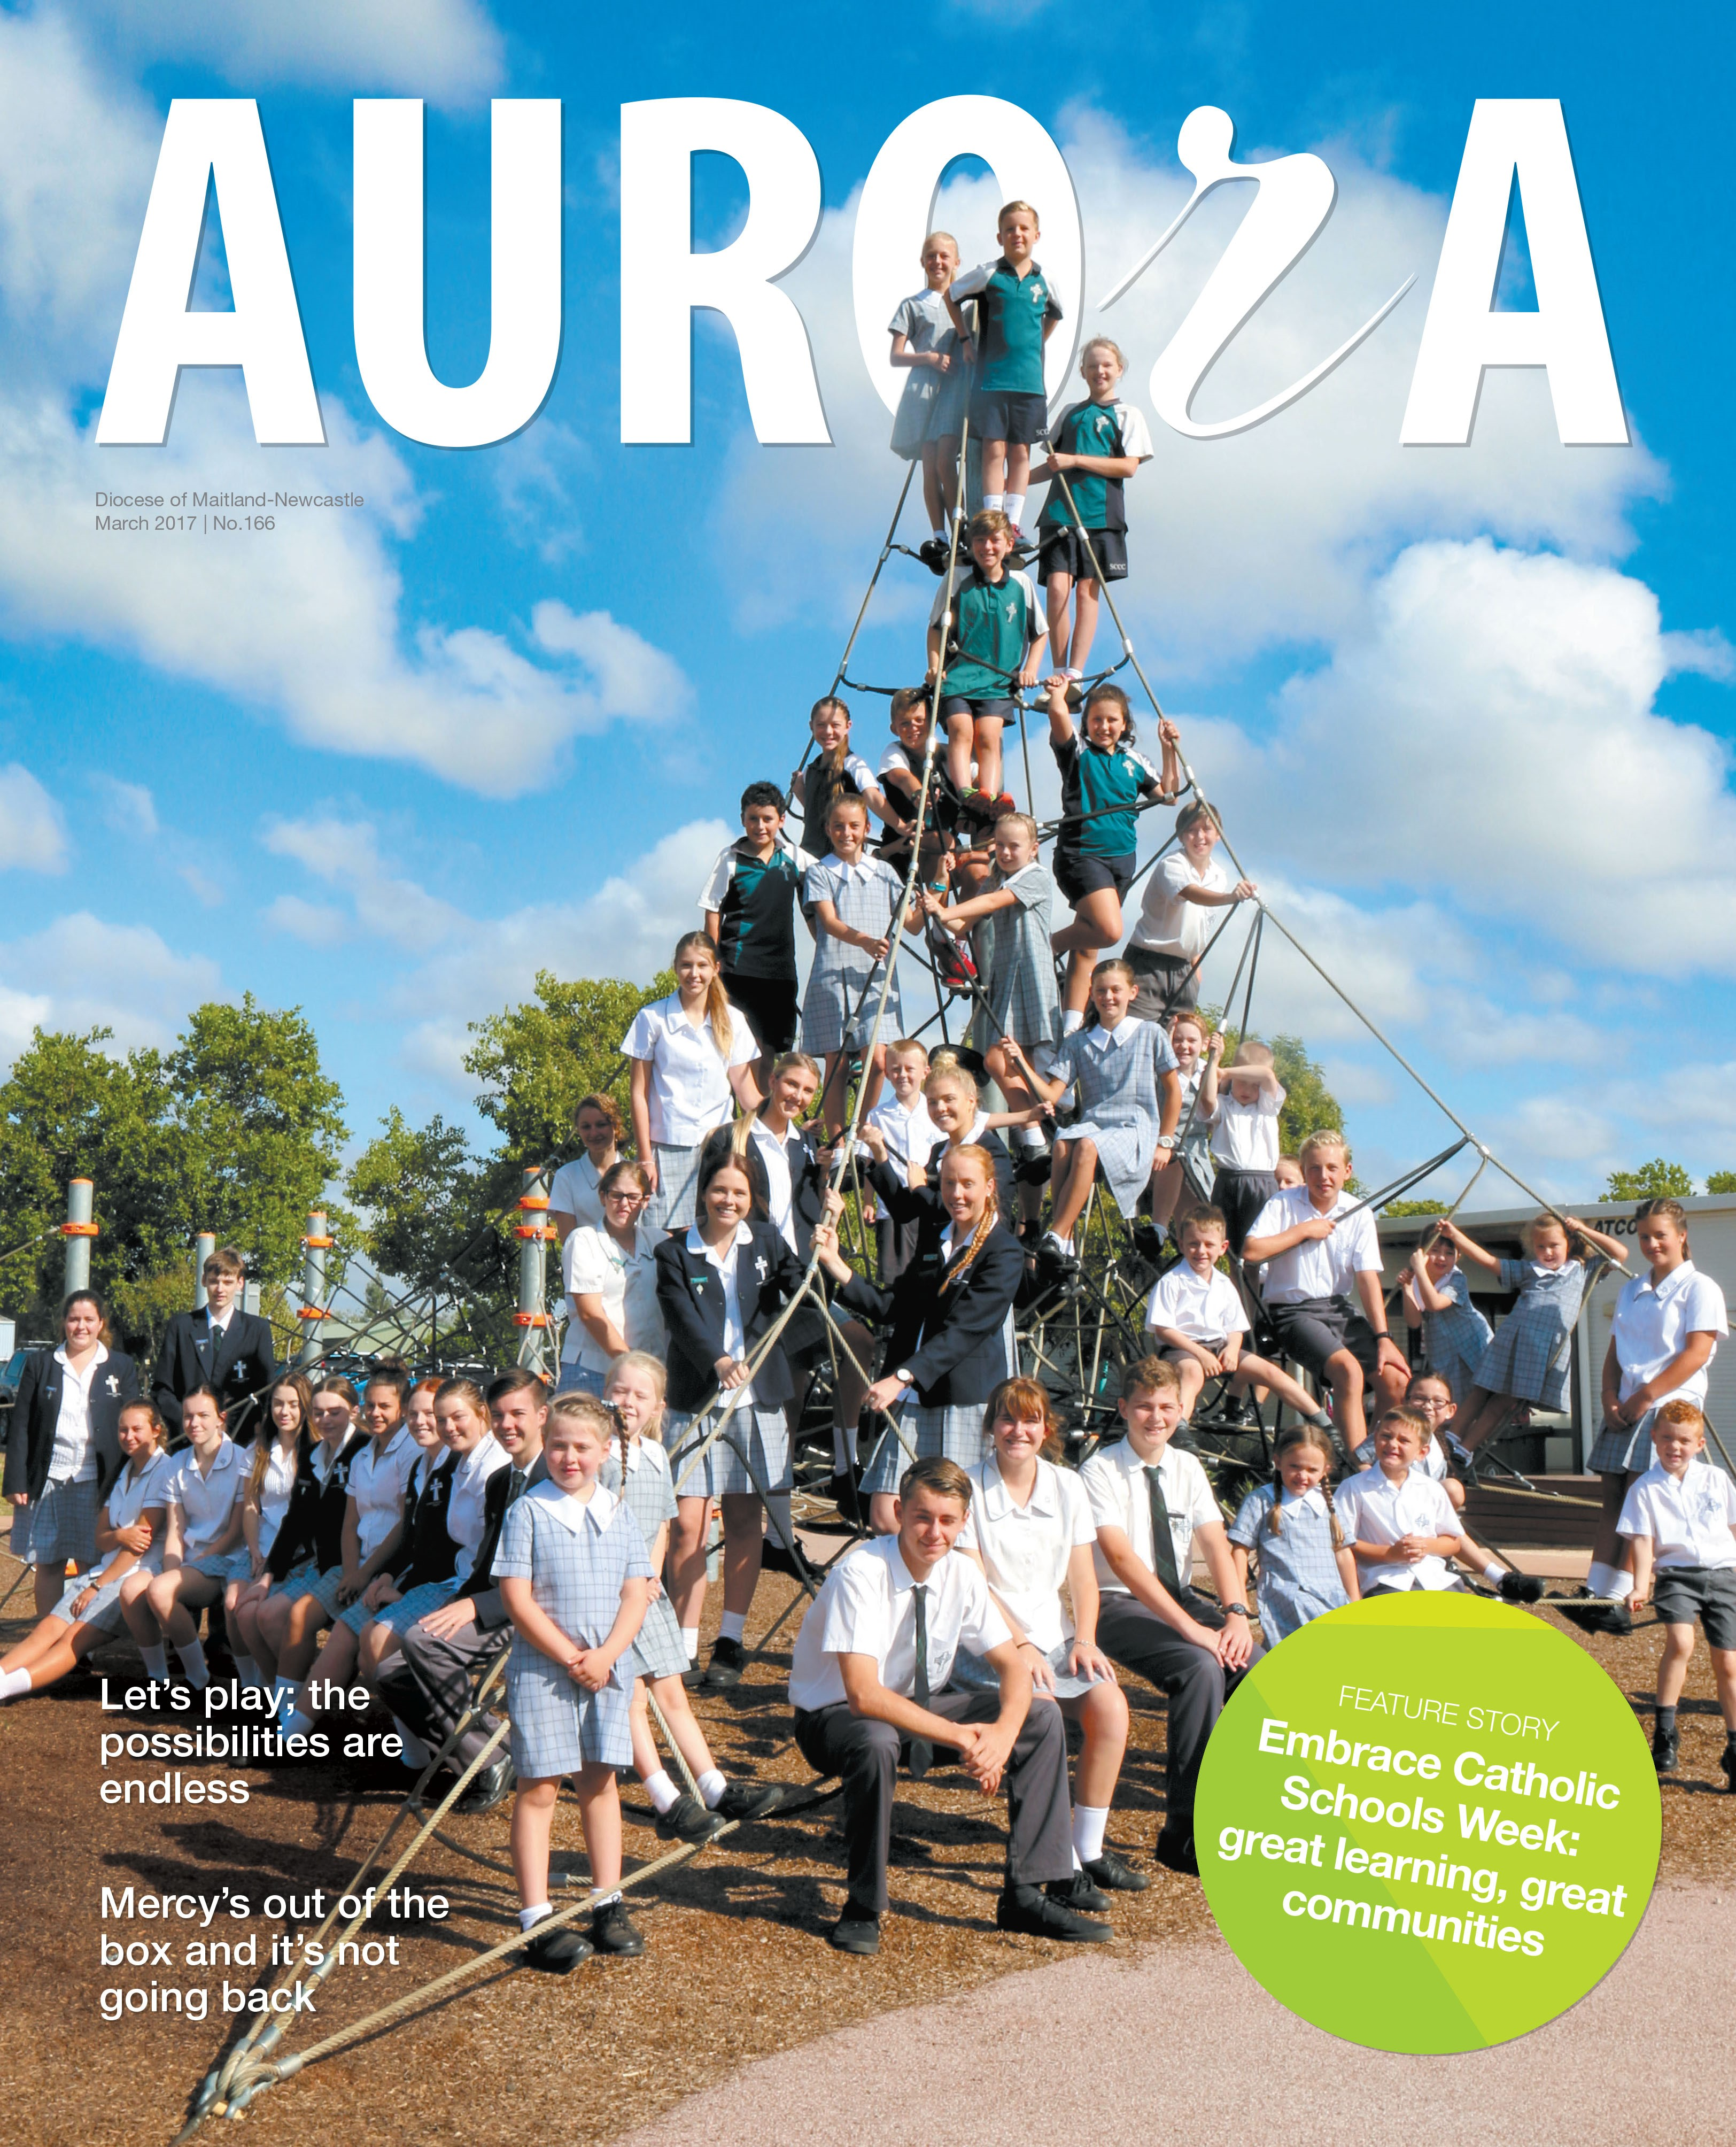 Aurora February 2017 Cover Image